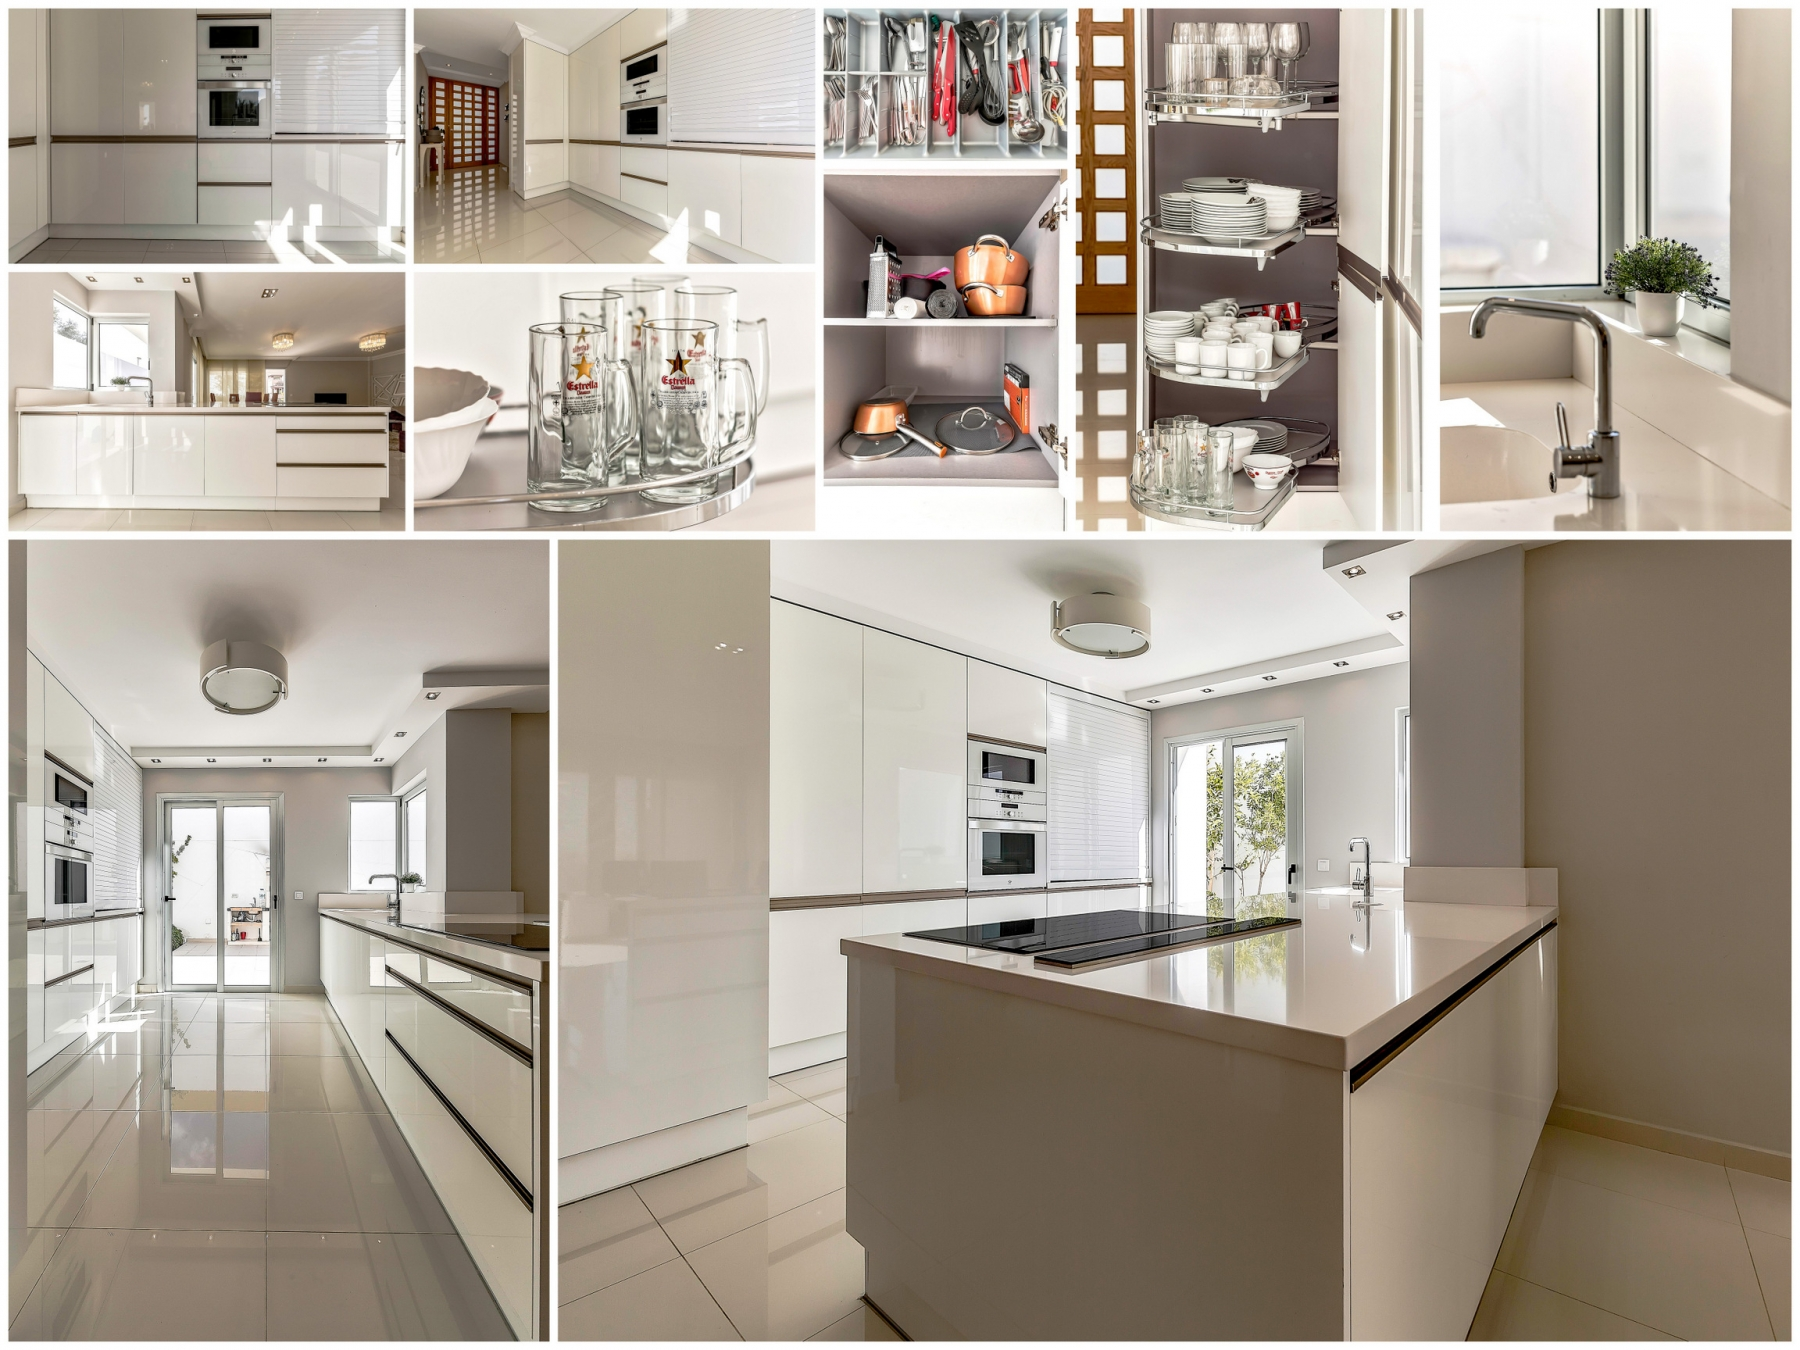 Properties for Sale in Tenerife, Canary Islands, Spain   SylkWayStar Real Estate. Luxury villa in the fashionable area of the south of the island of Tenerife – Madroñal.. Image-22852